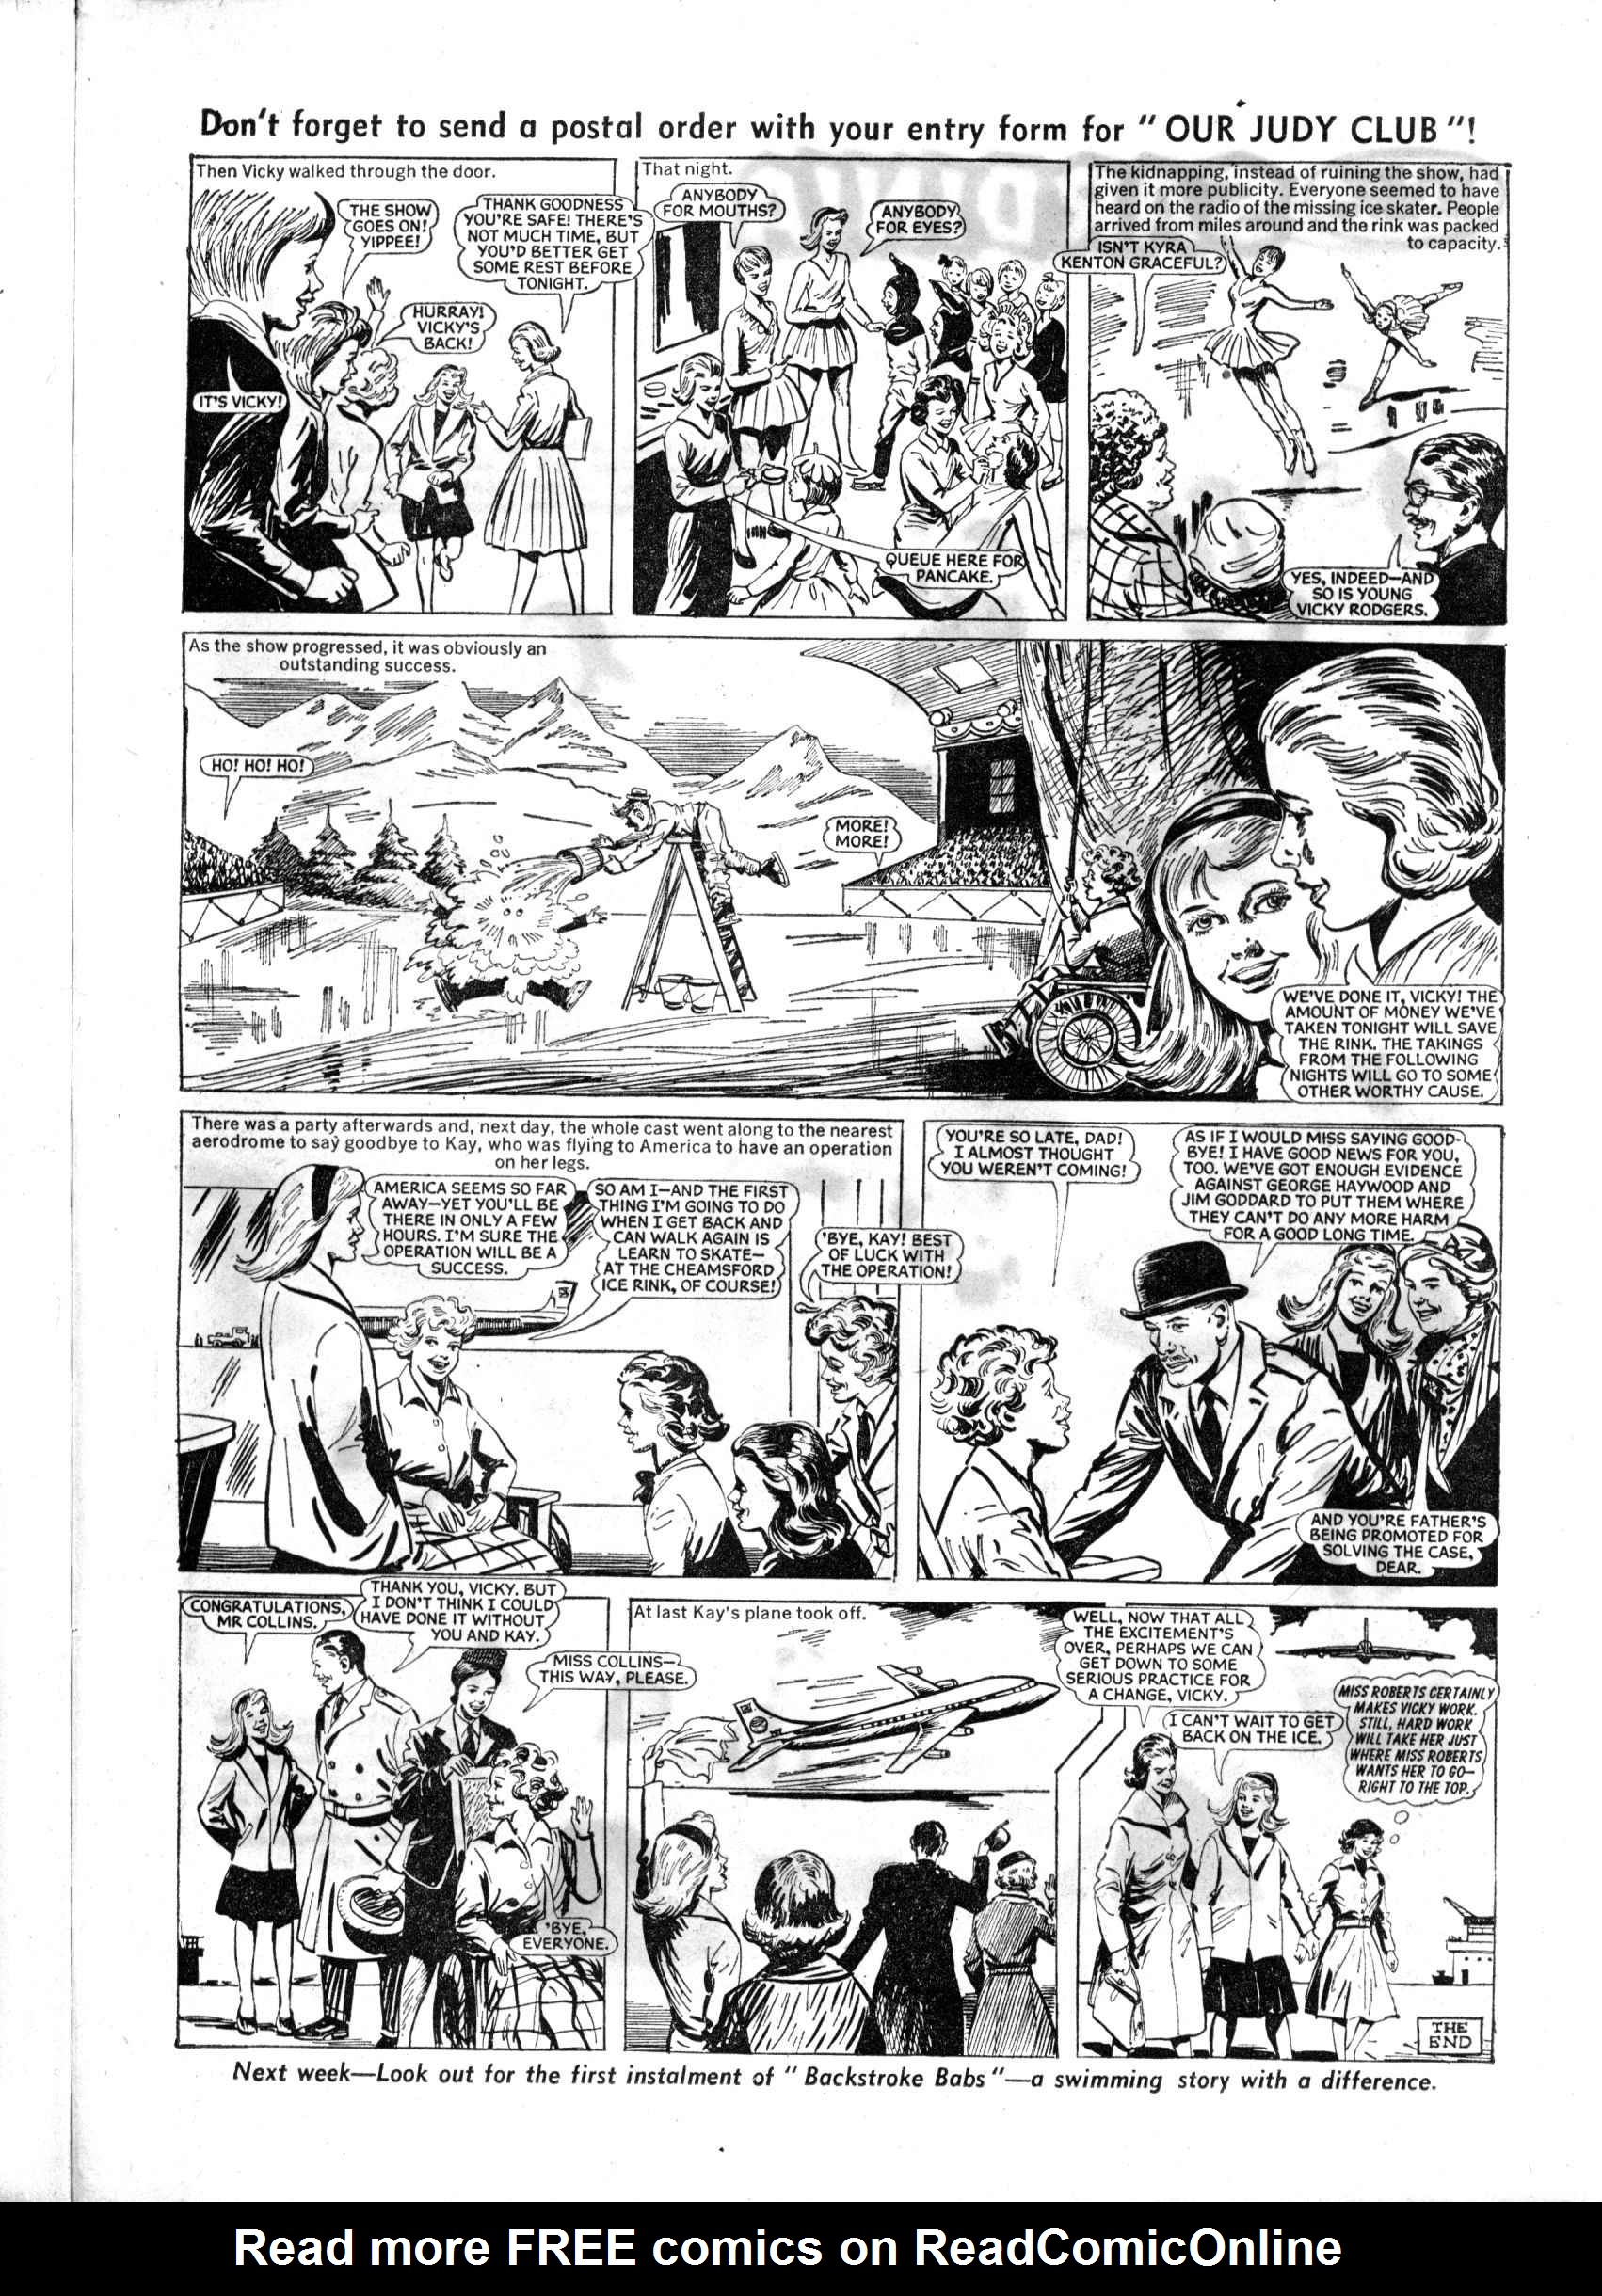 Read online Judy comic -  Issue #168 - 31